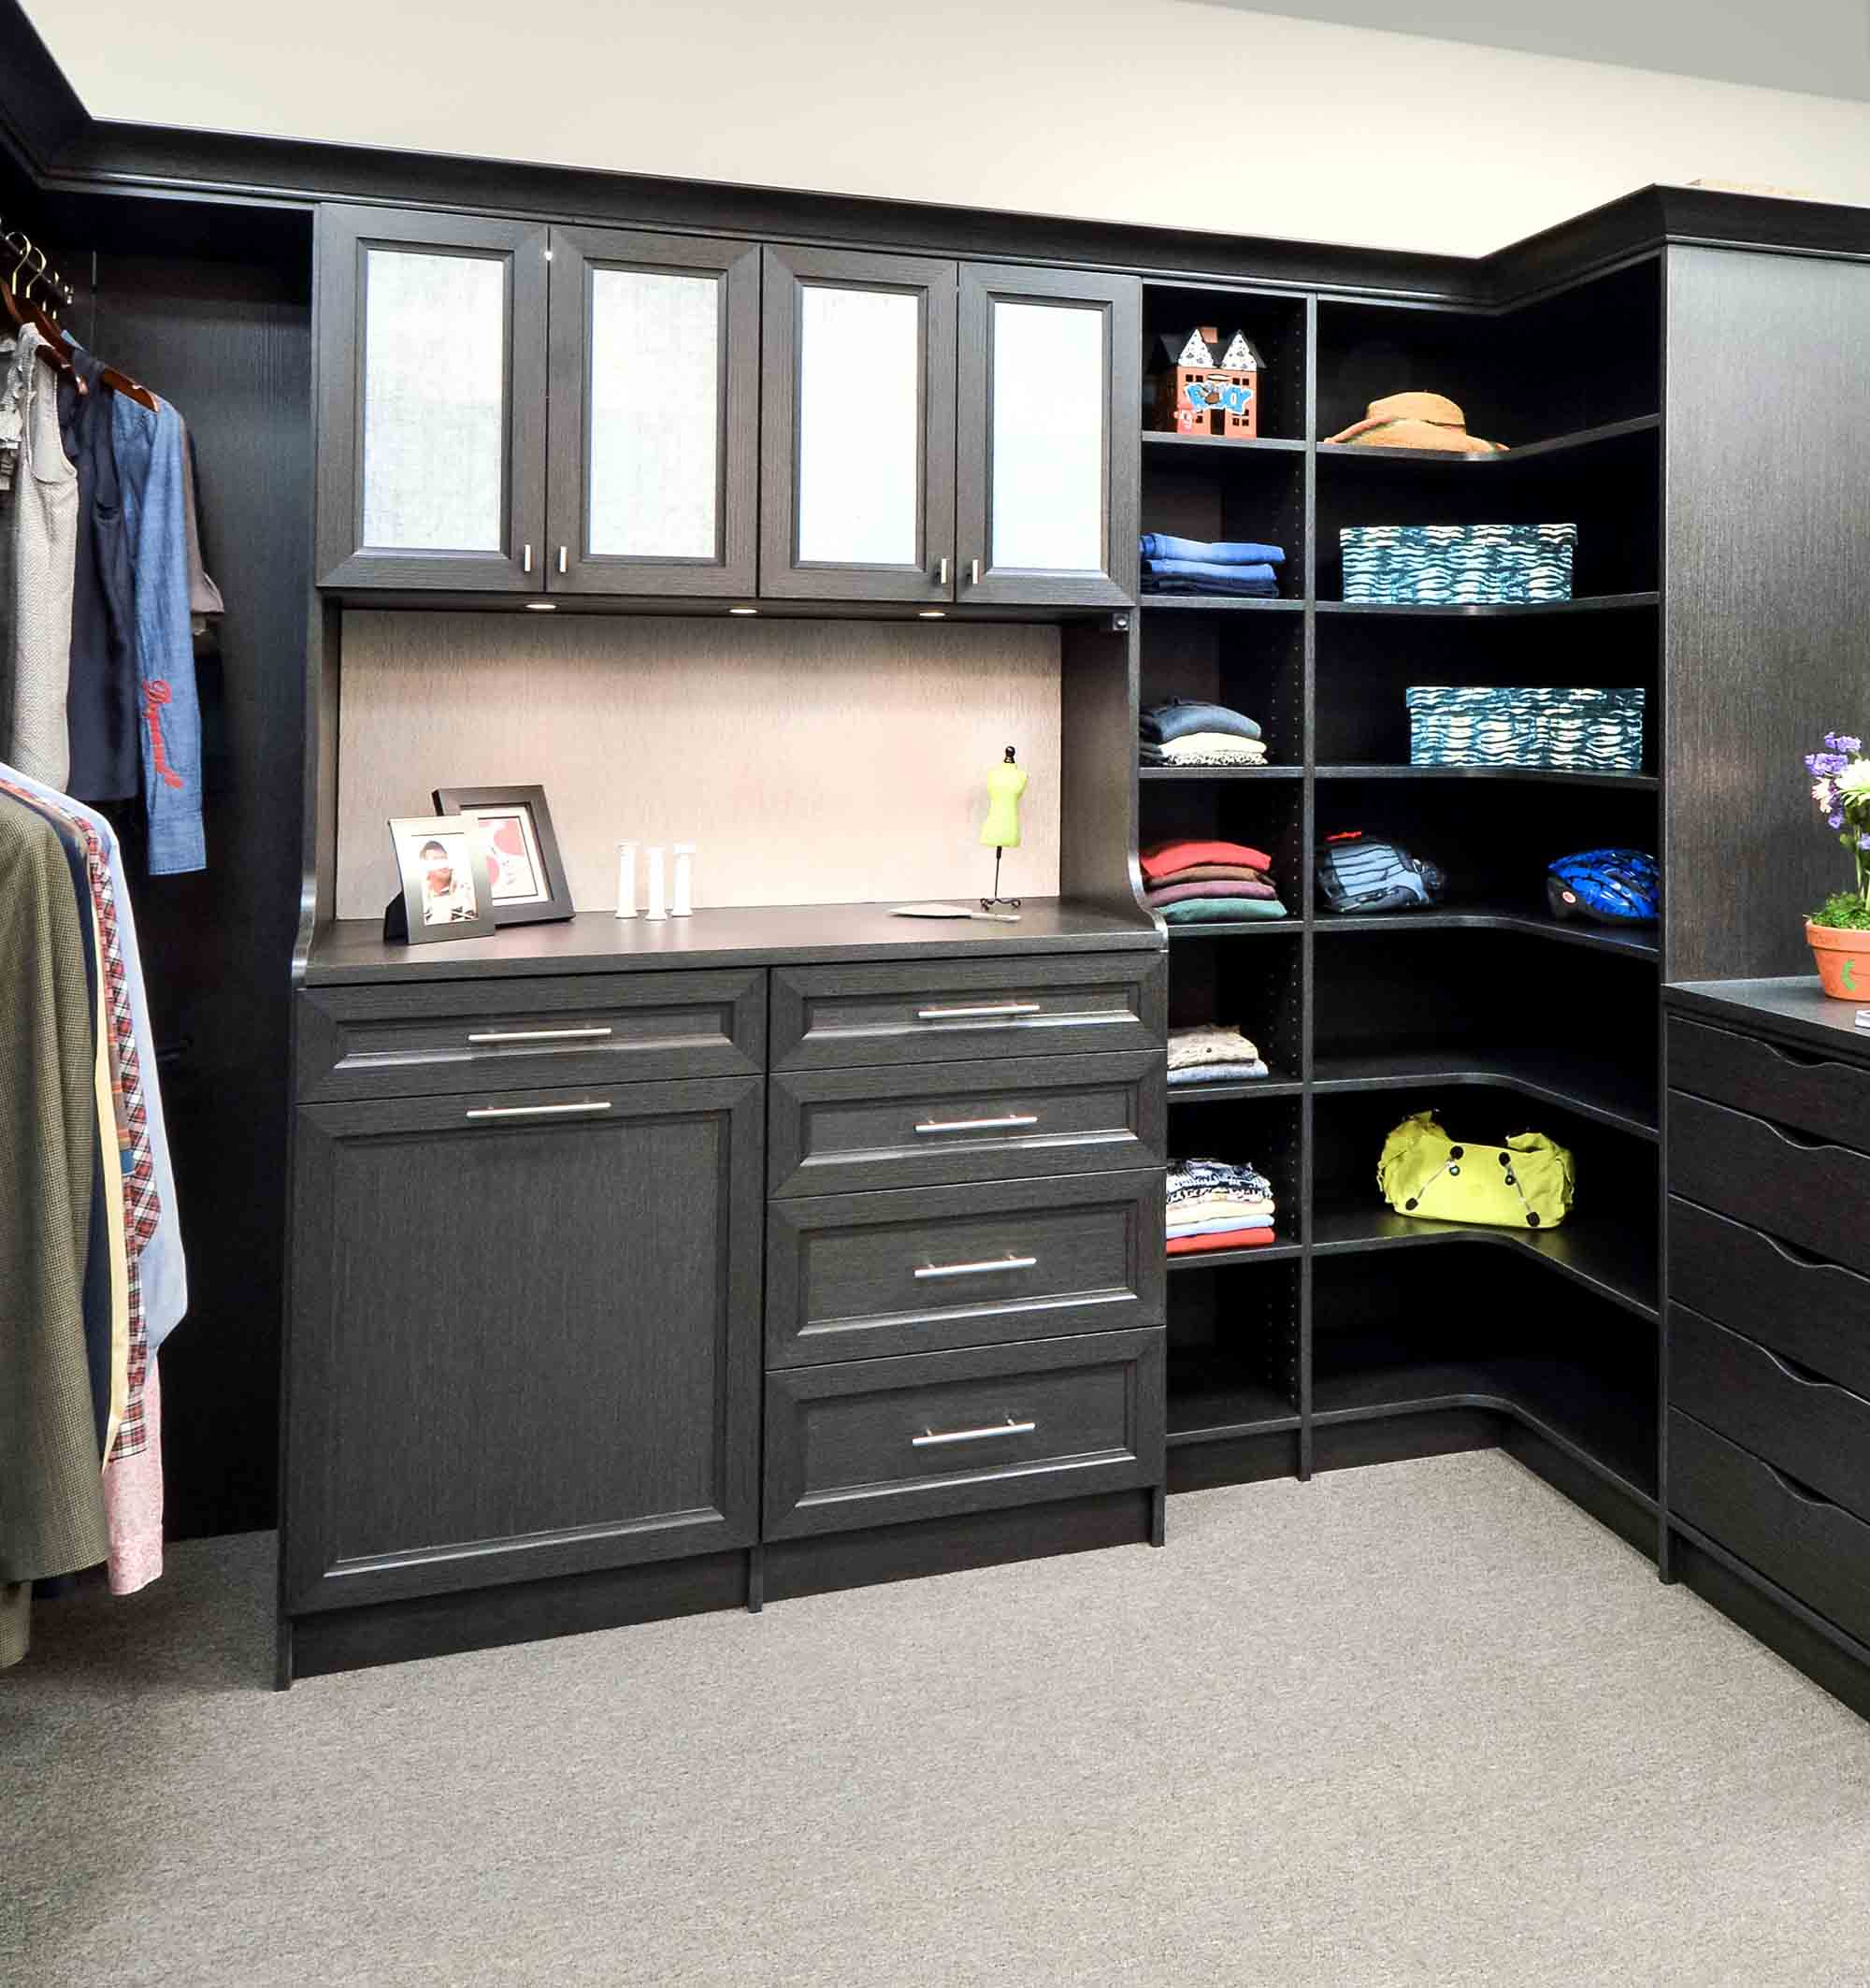 Organized walk in closet with rounded corner shelving